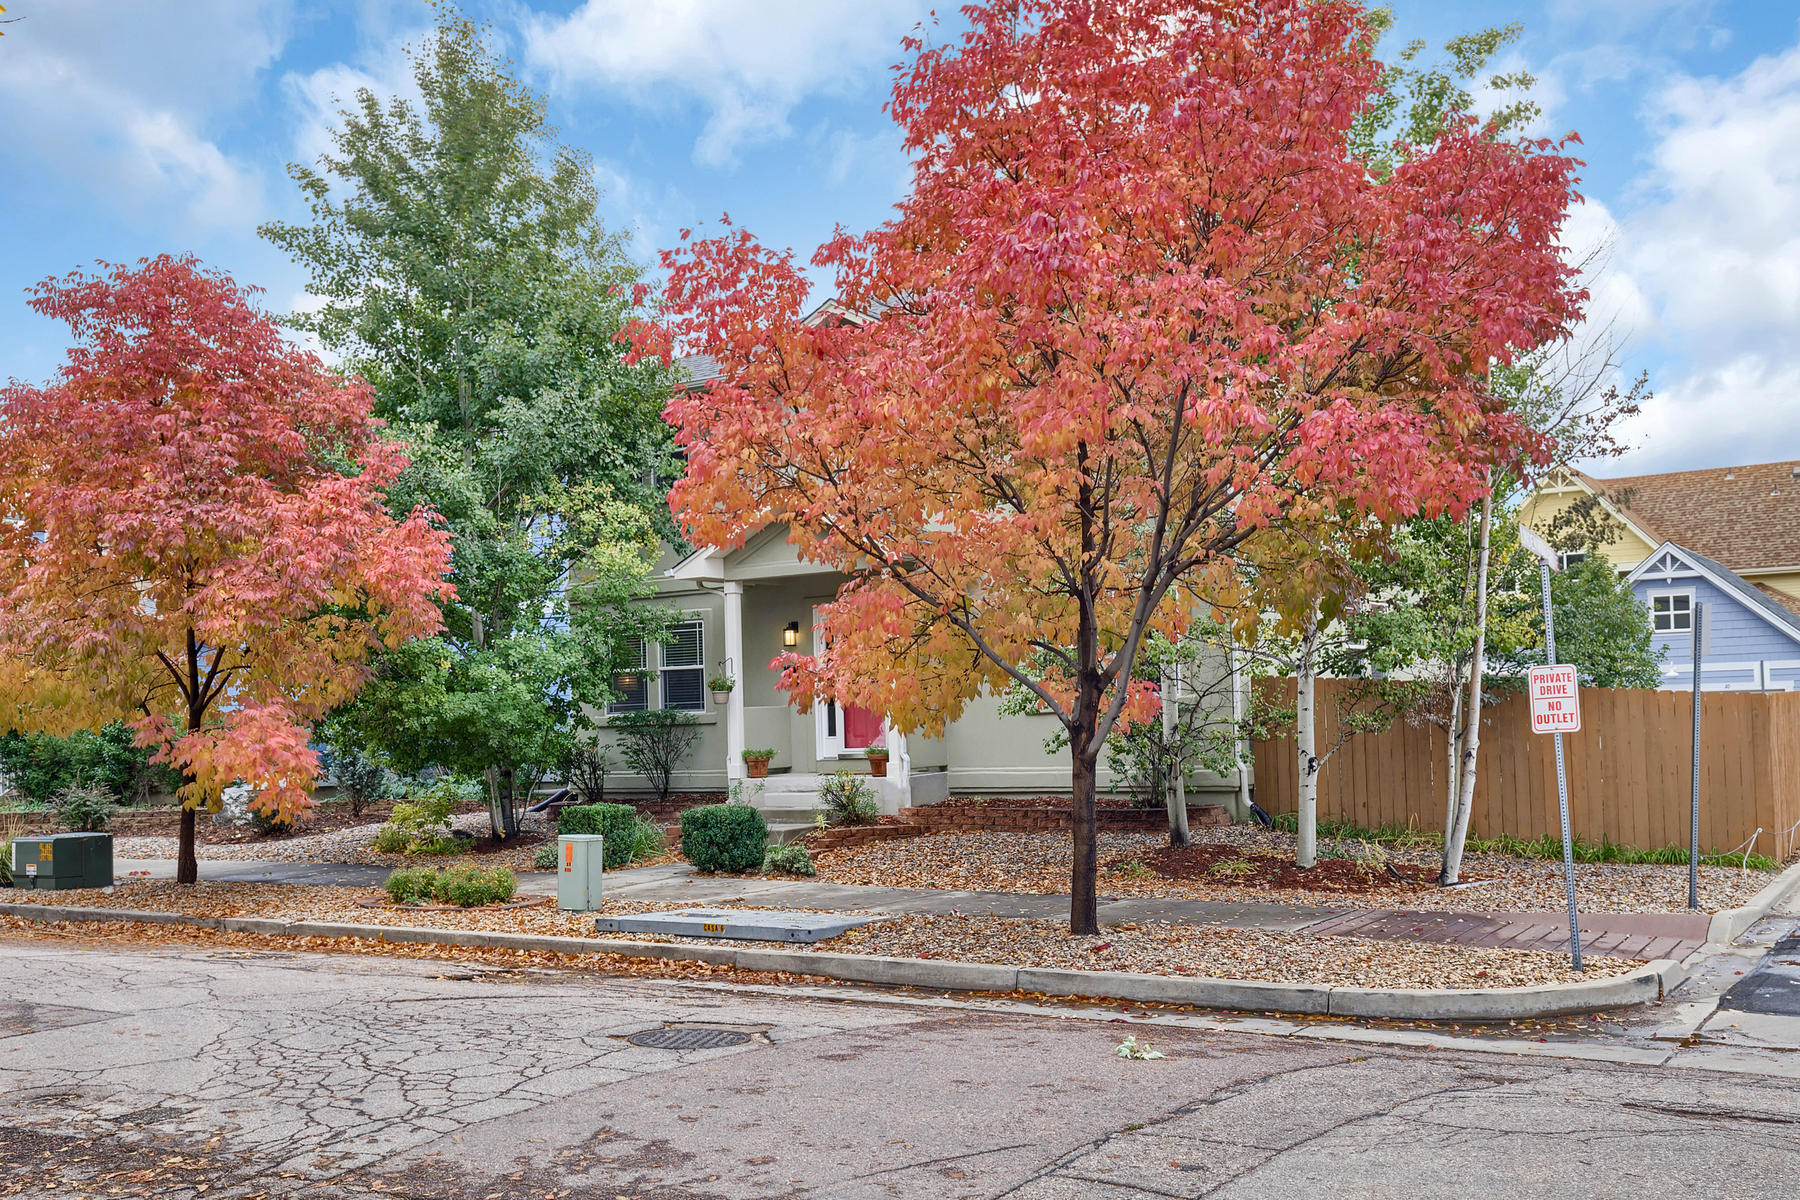 Single Family Home for Active at BEST OF BOTH WORLDS – NEWER HOME DOWNTOWN! 515 E Columbia St Colorado Springs, Colorado 80907 United States